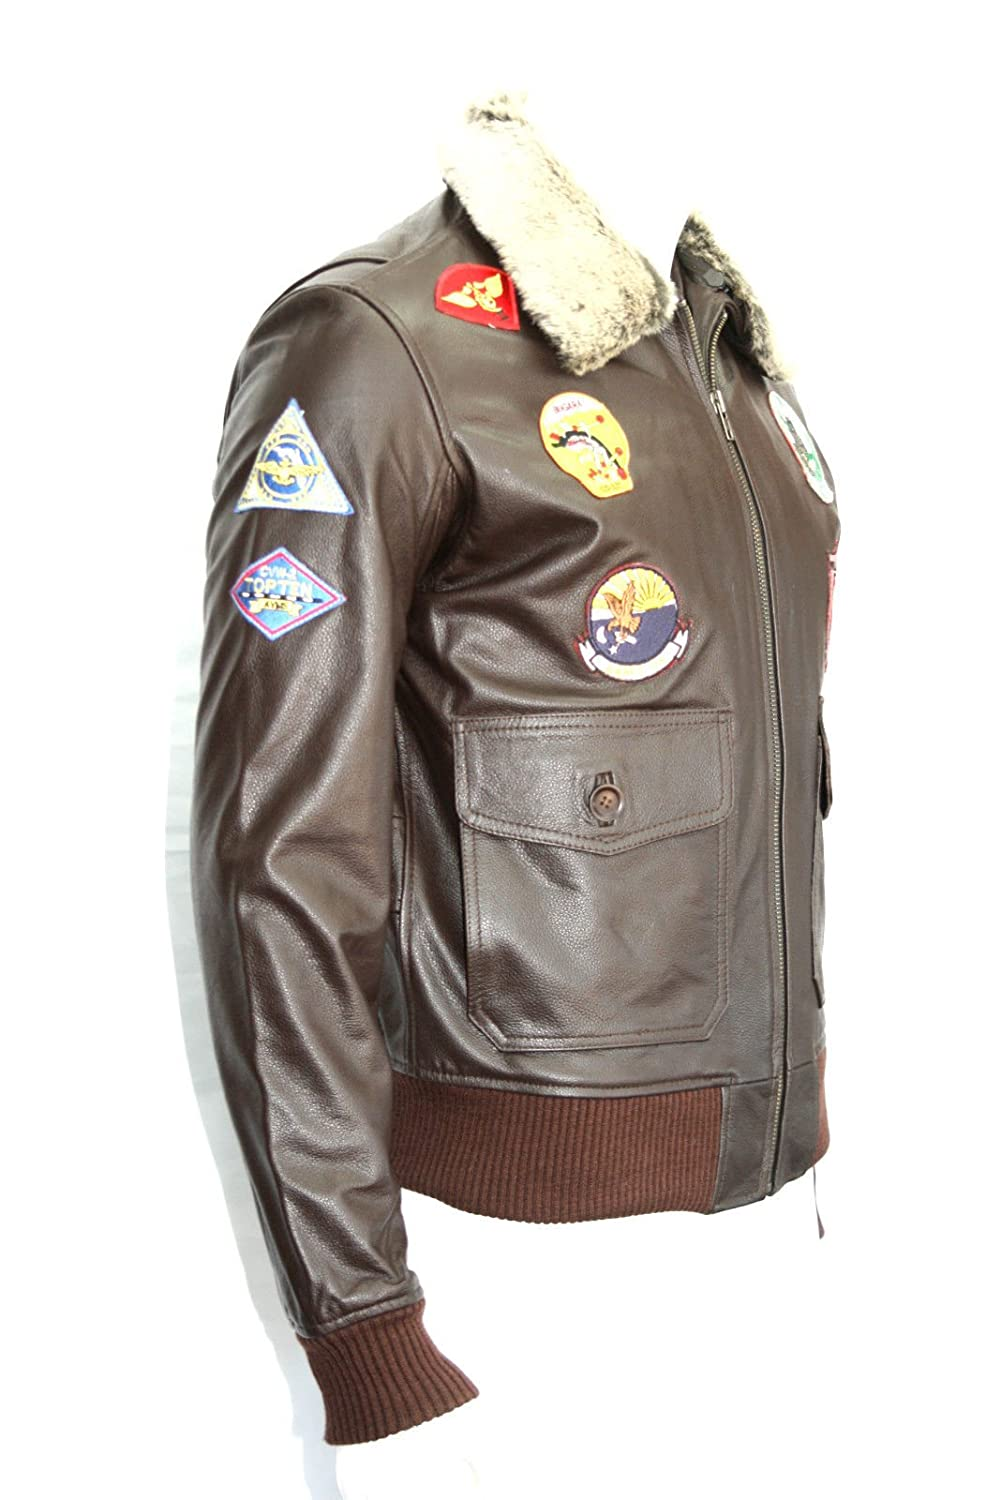 TOP GUN Mens Fashion CLASSIC, SPORT, FELLKRAGEN BROWN Bomberjacke aus Leder